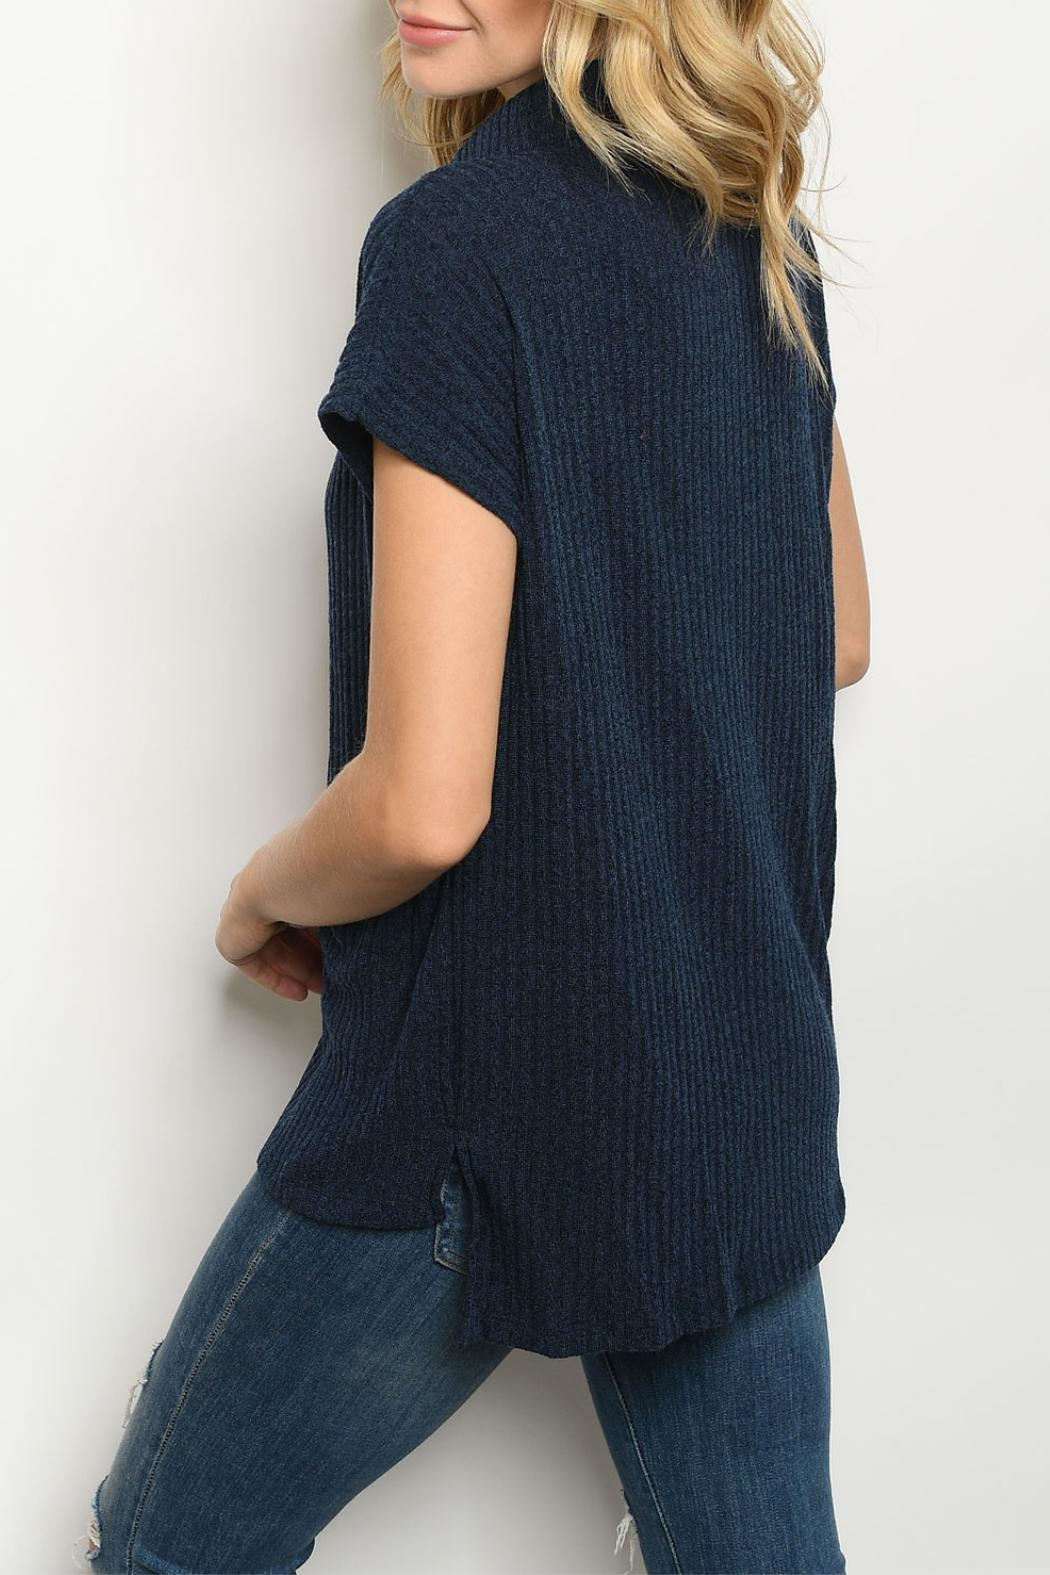 Ginger G Navy Cowl-Neck Top - Front Full Image